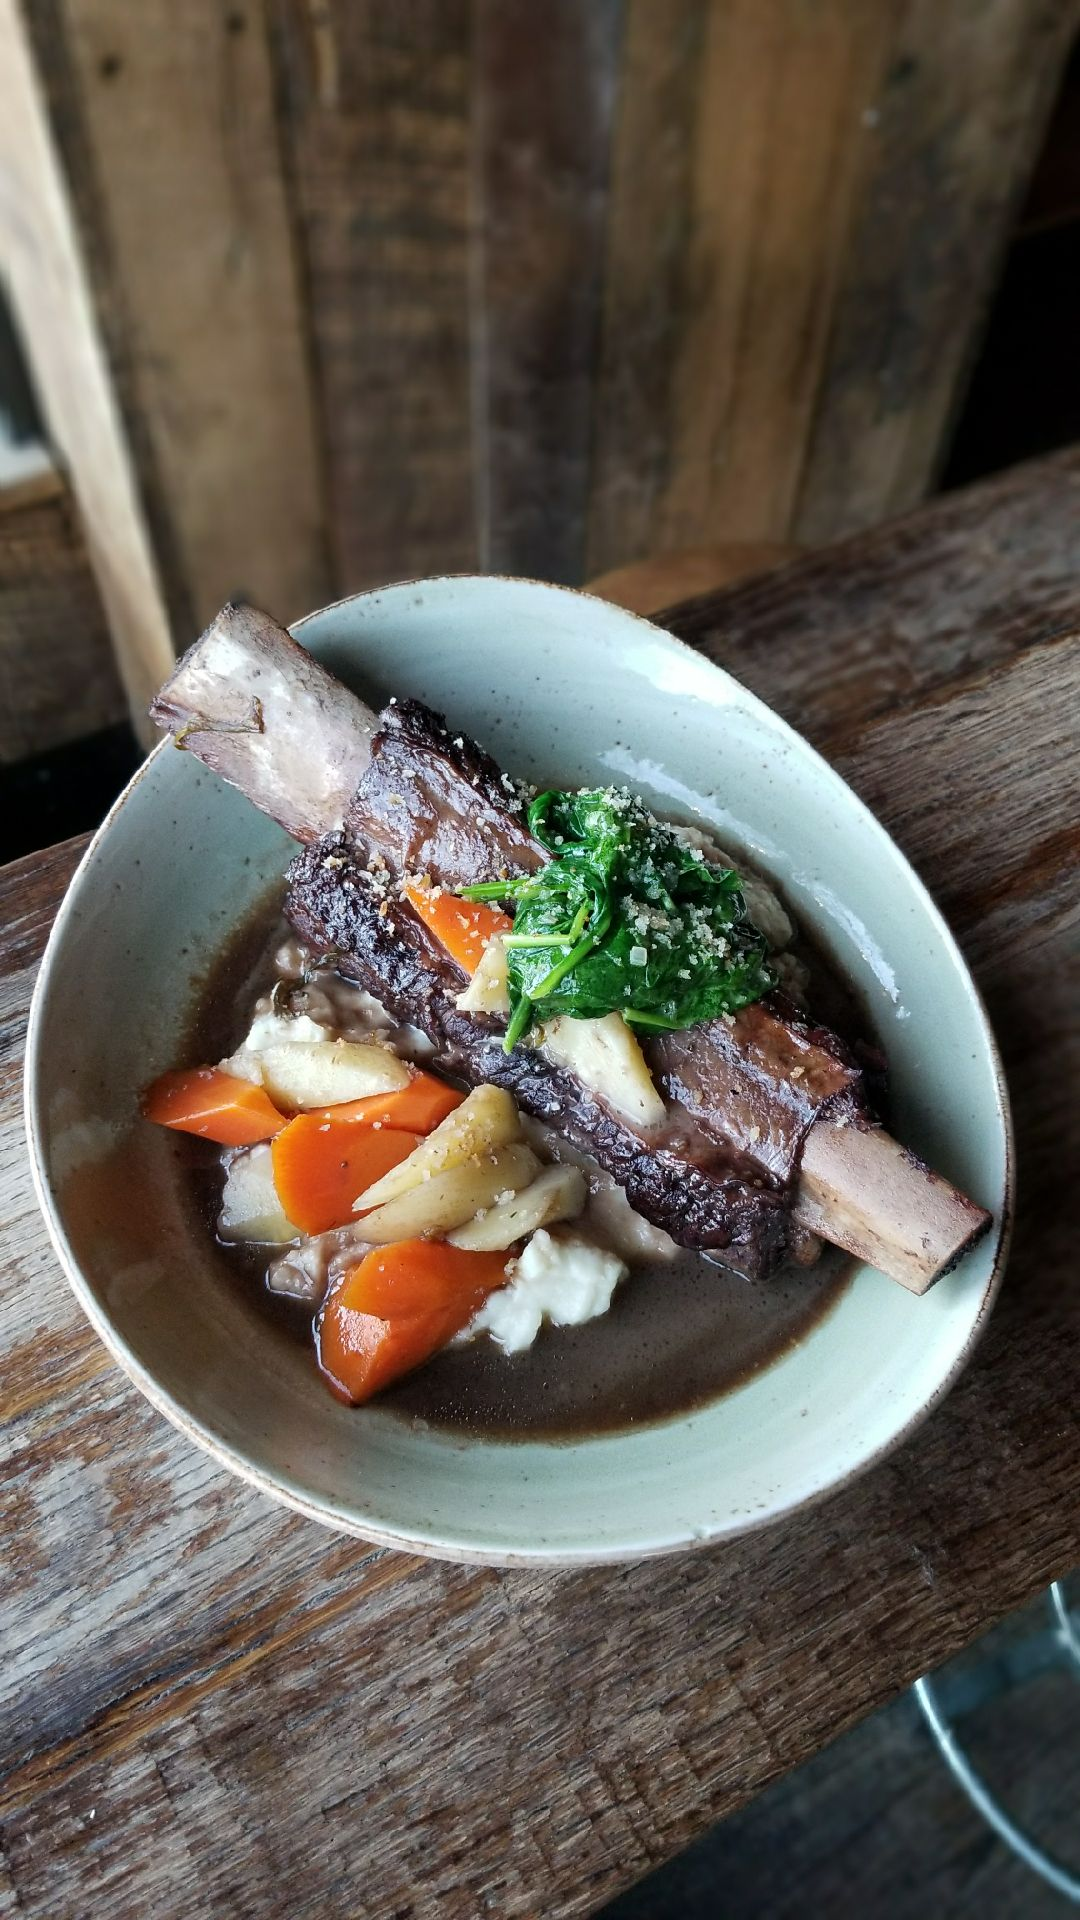 Braised Short Rib with Red Wine Au Jus, Celery Root Puree, Carrots, Parsnips, Greens and Gremolata (Photo courtesy: Barrel)<p></p>